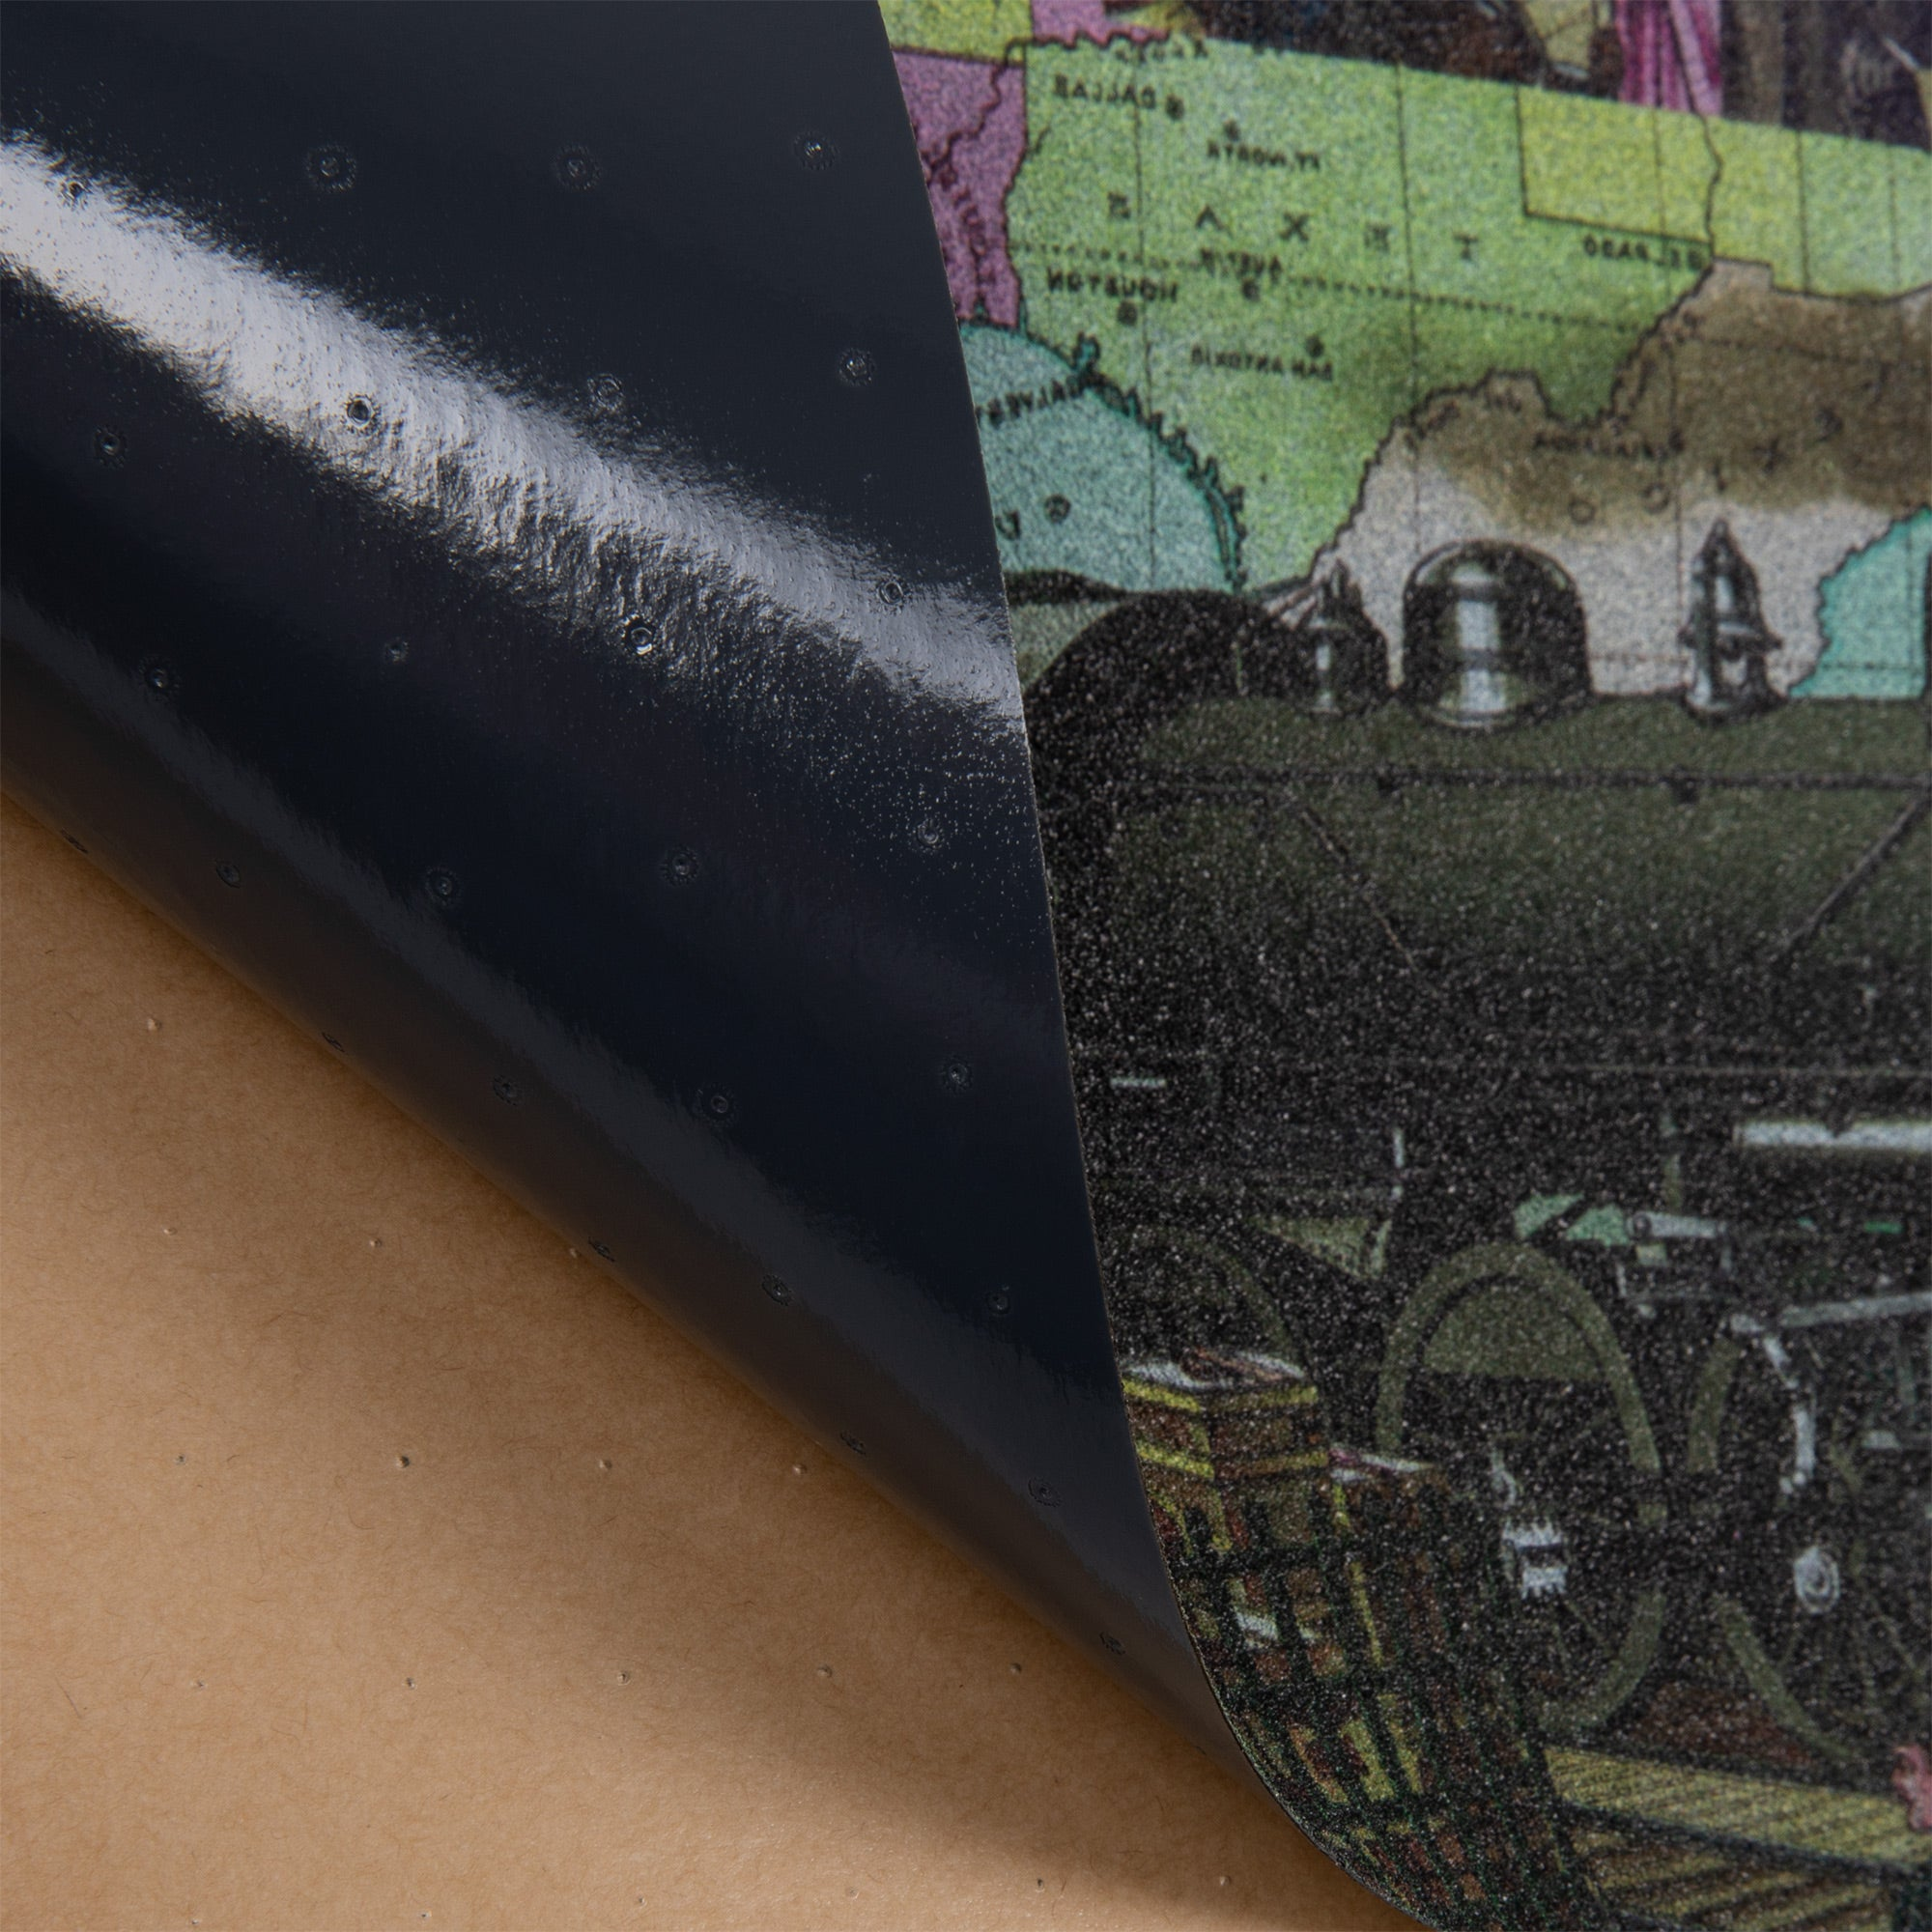 Cal 7 black skateboard griptape with old days design